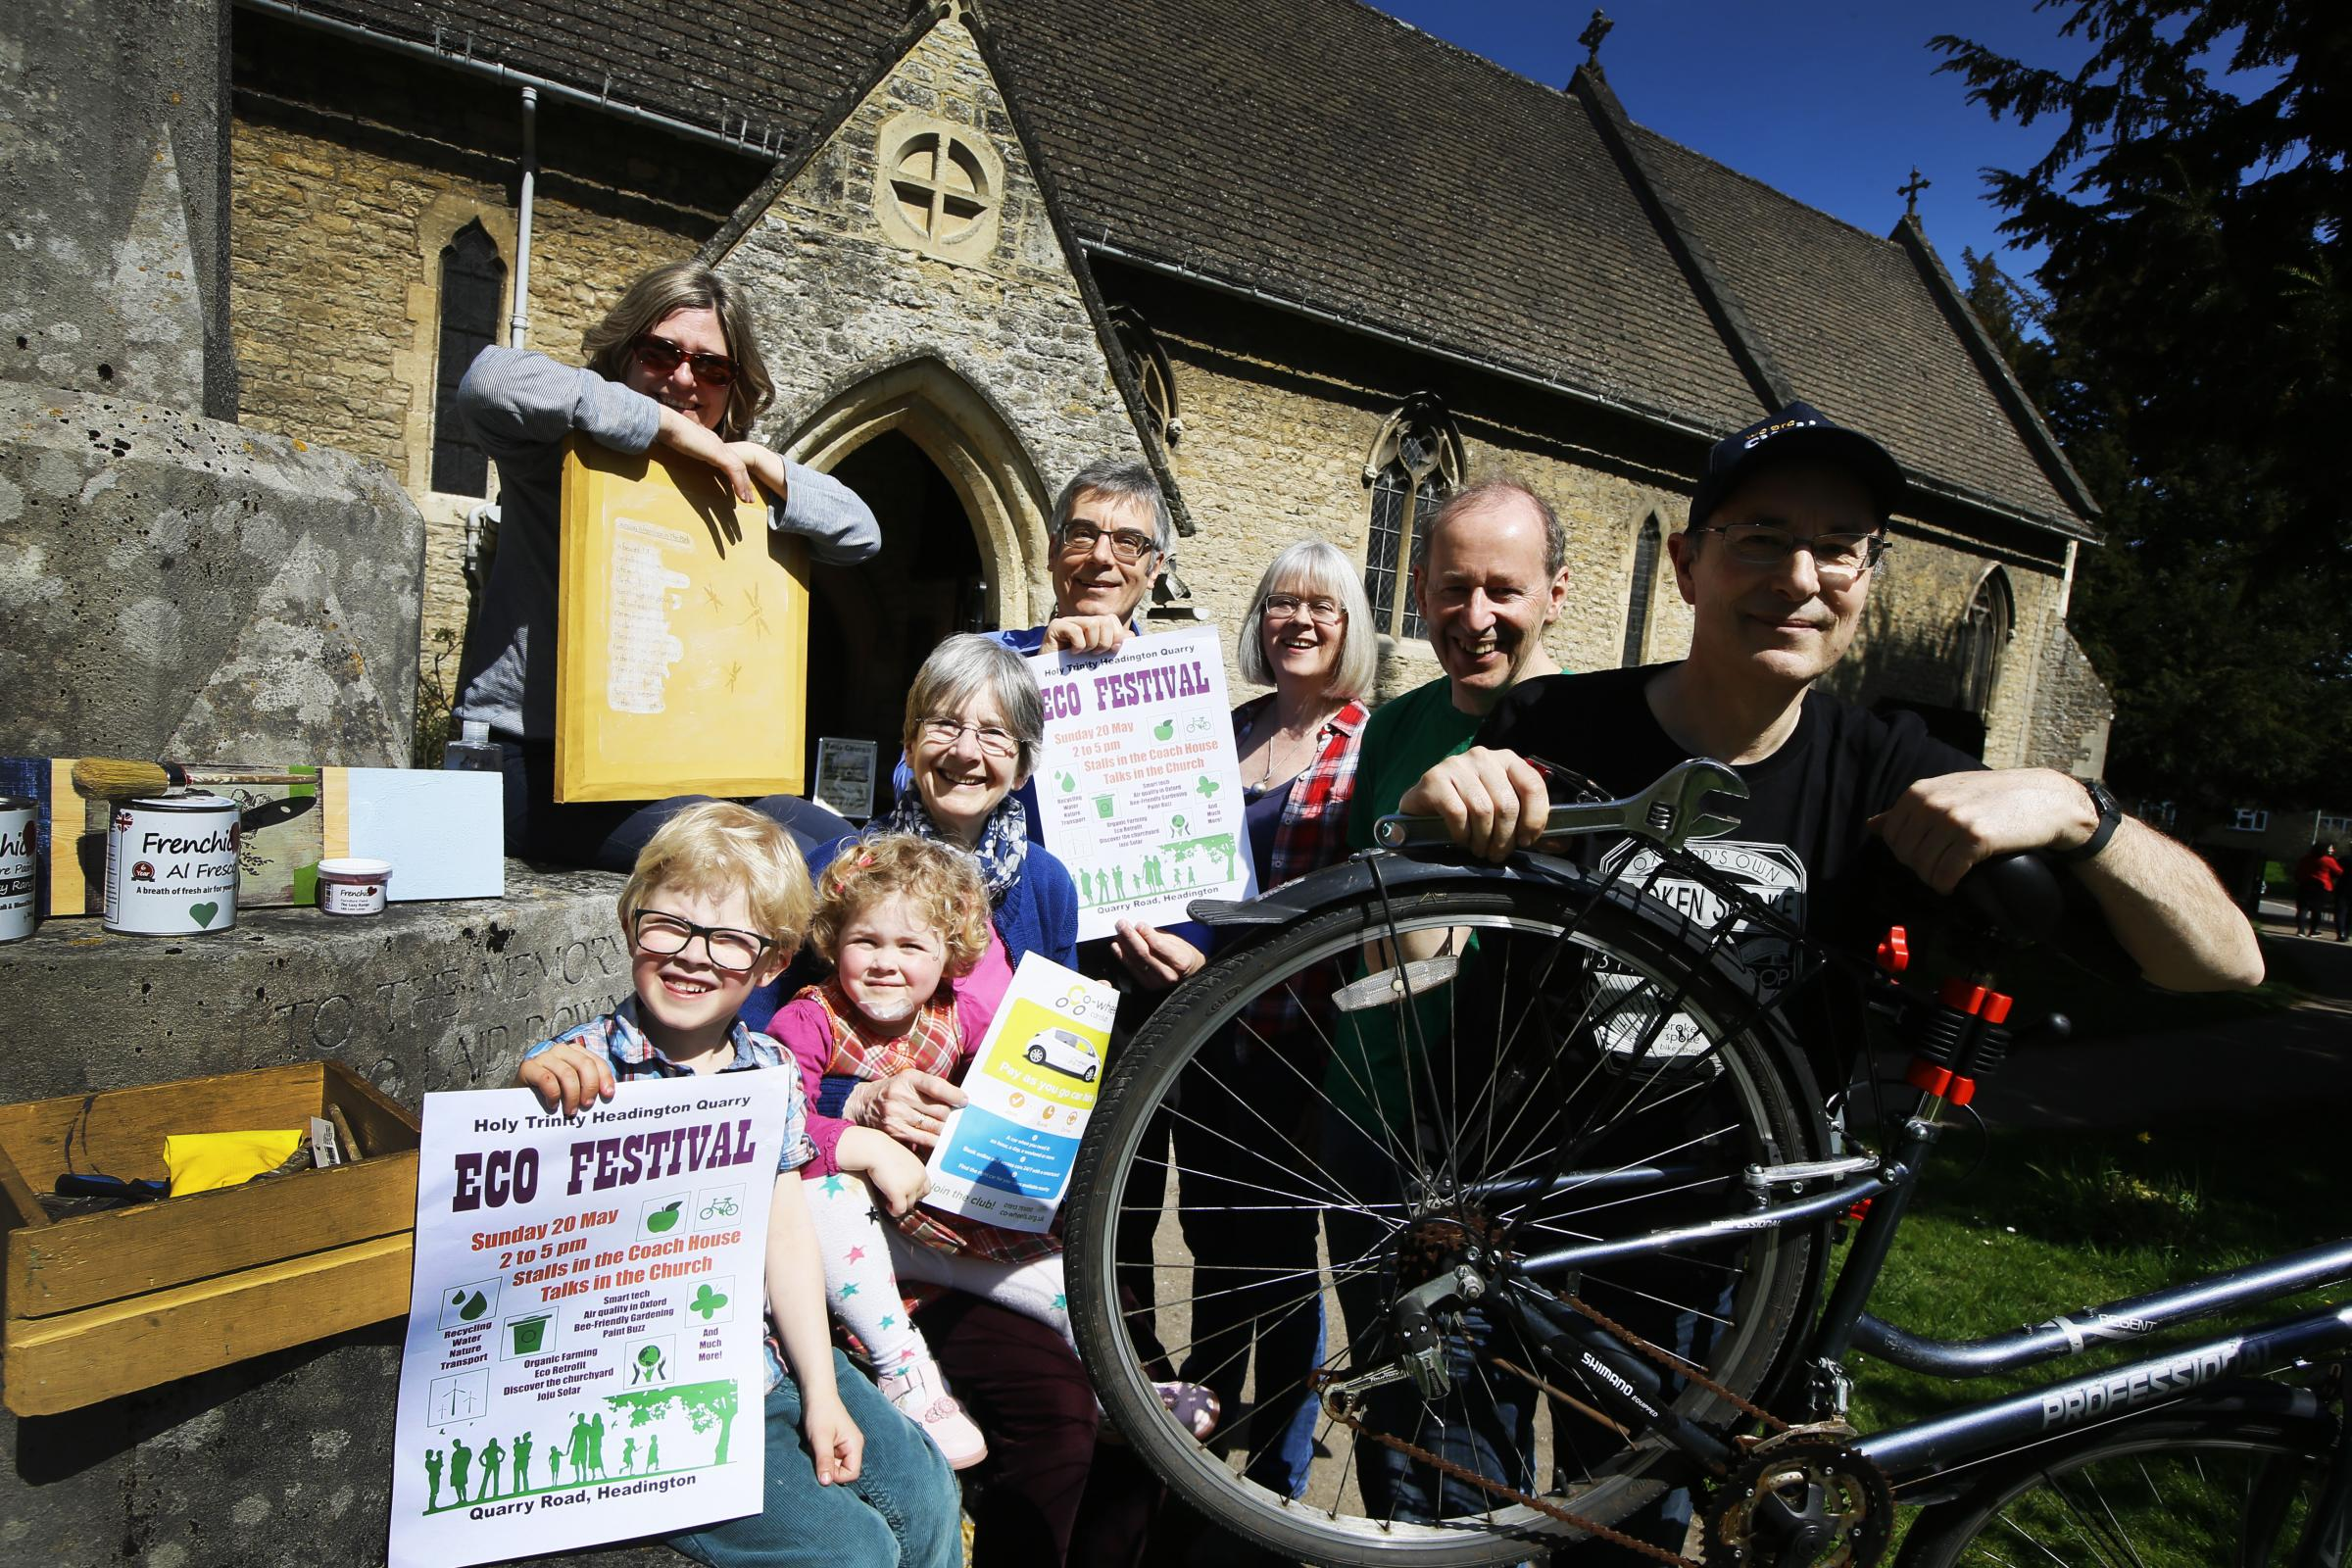 Headington Eco Festival organisers and exhibitors. Left to right, Mary Zacaroli from Paint Buzz, William and Emily Nicolson with Grandmother Hilary Rollin, Karl and Felicity Wallendszus, James Larminie from Sustrans and Jonathan Darby from Broken Spoke bi